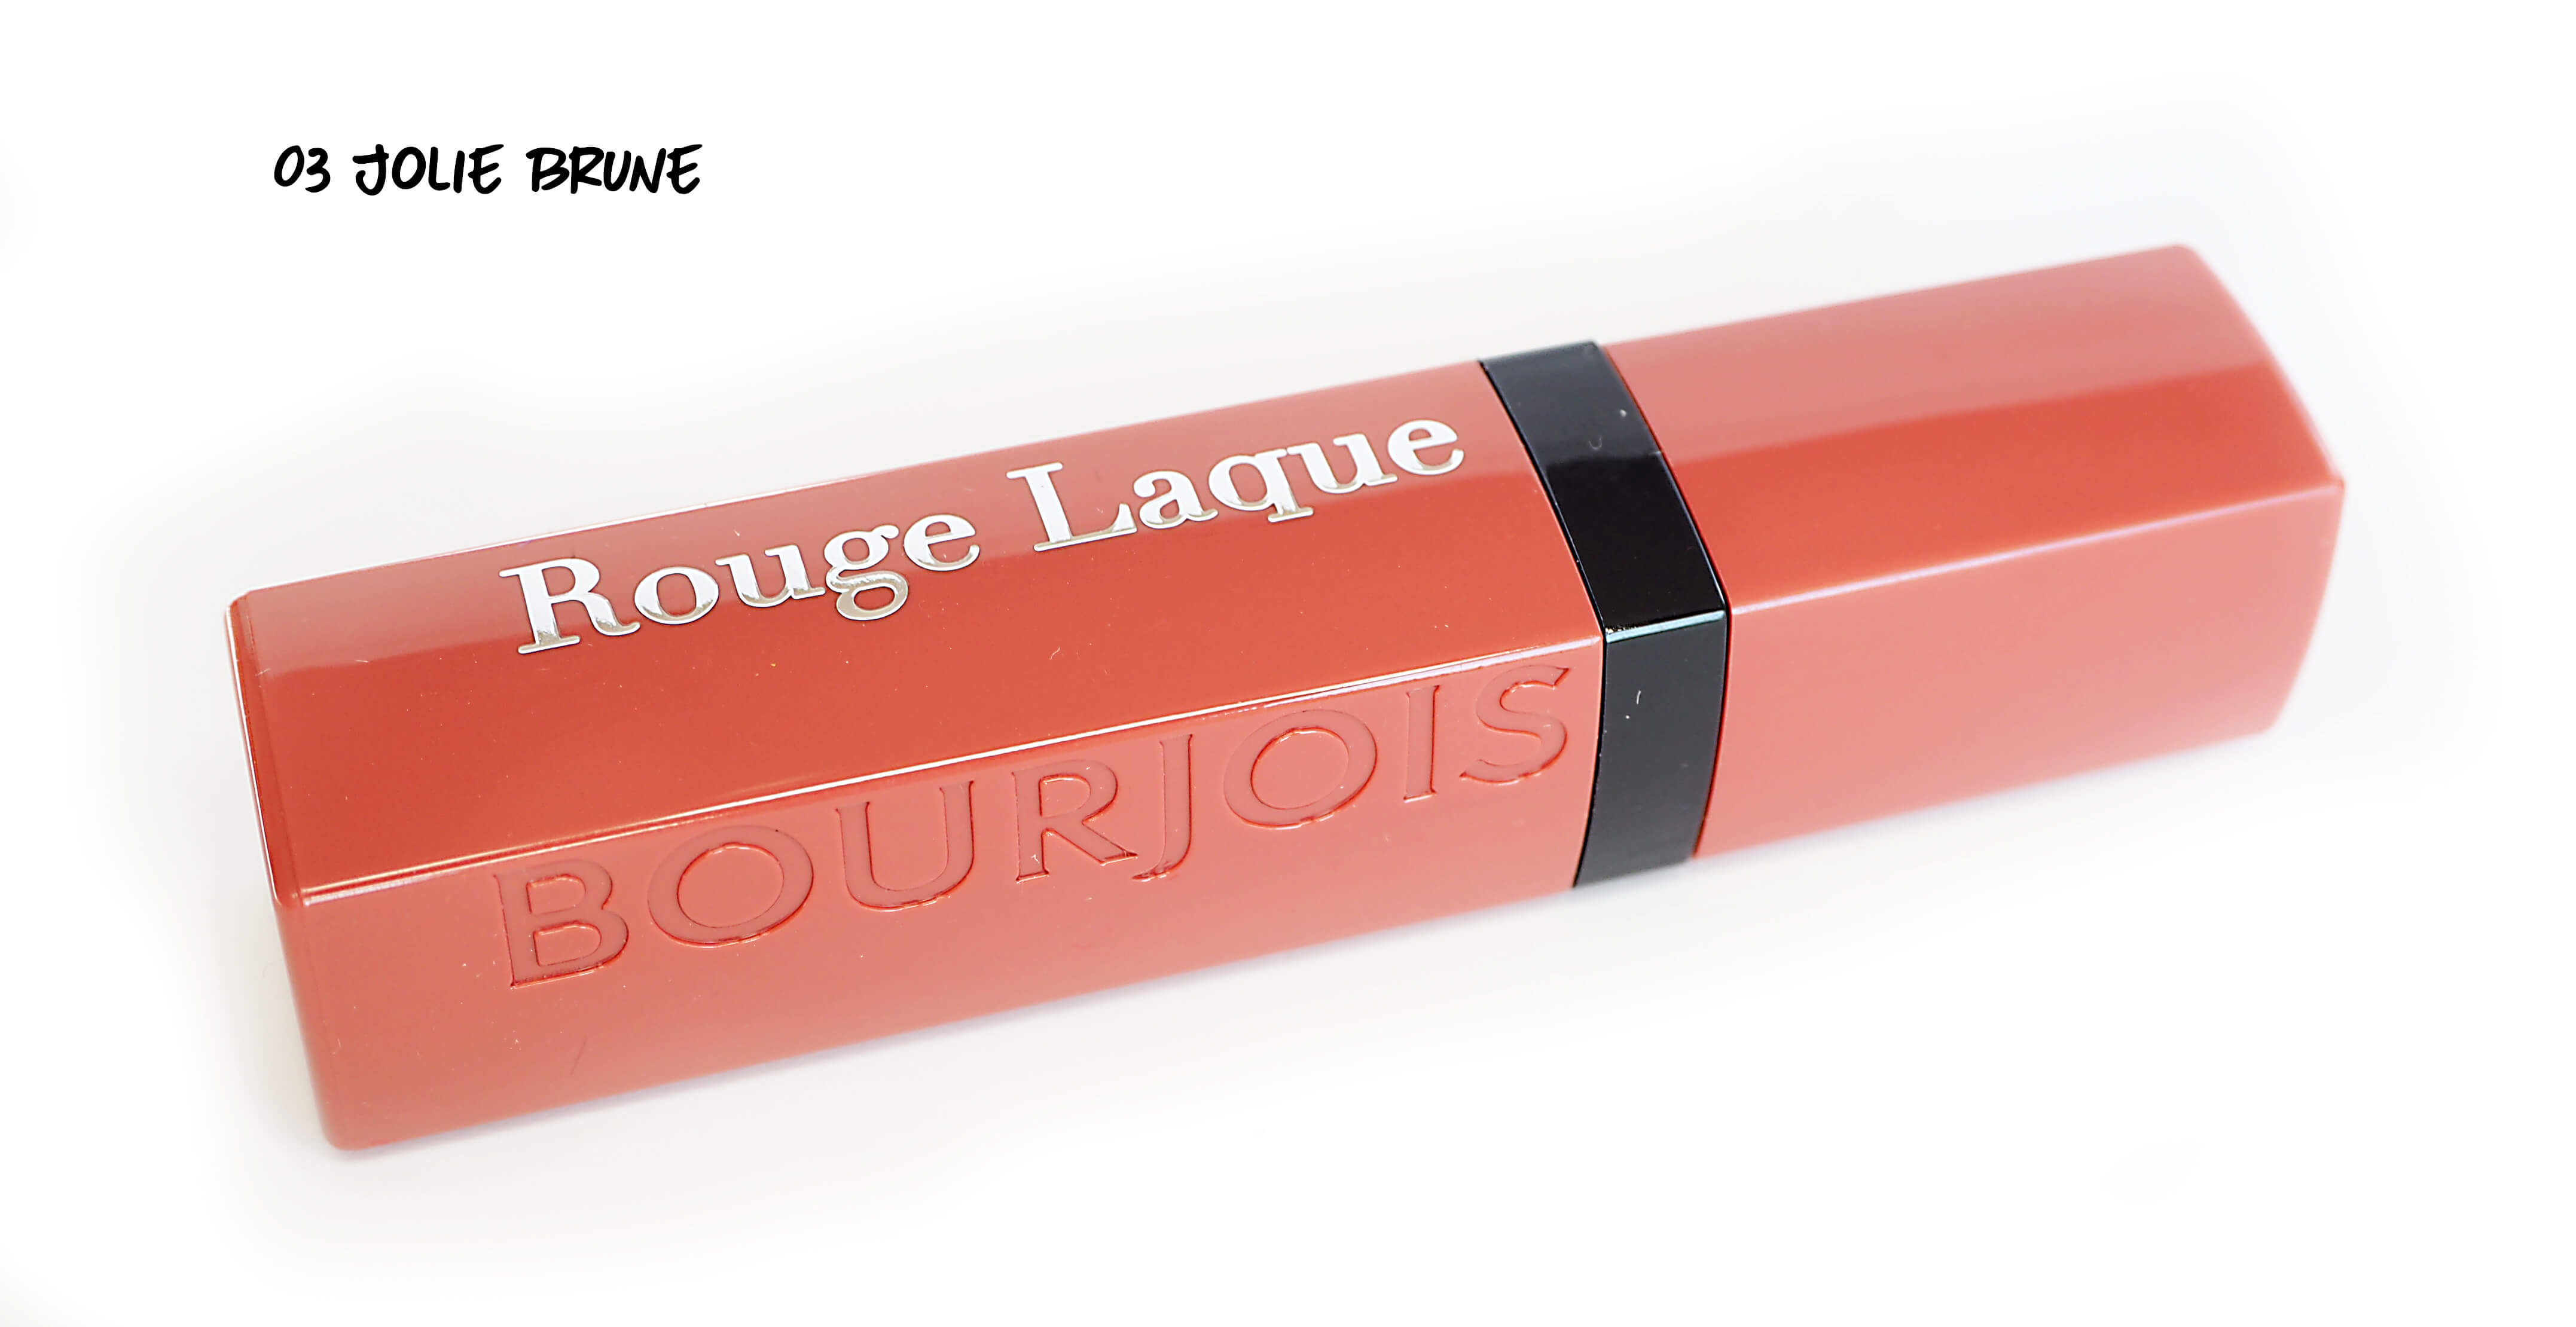 03 JOLIE BRUNE ROUGE LAQUE